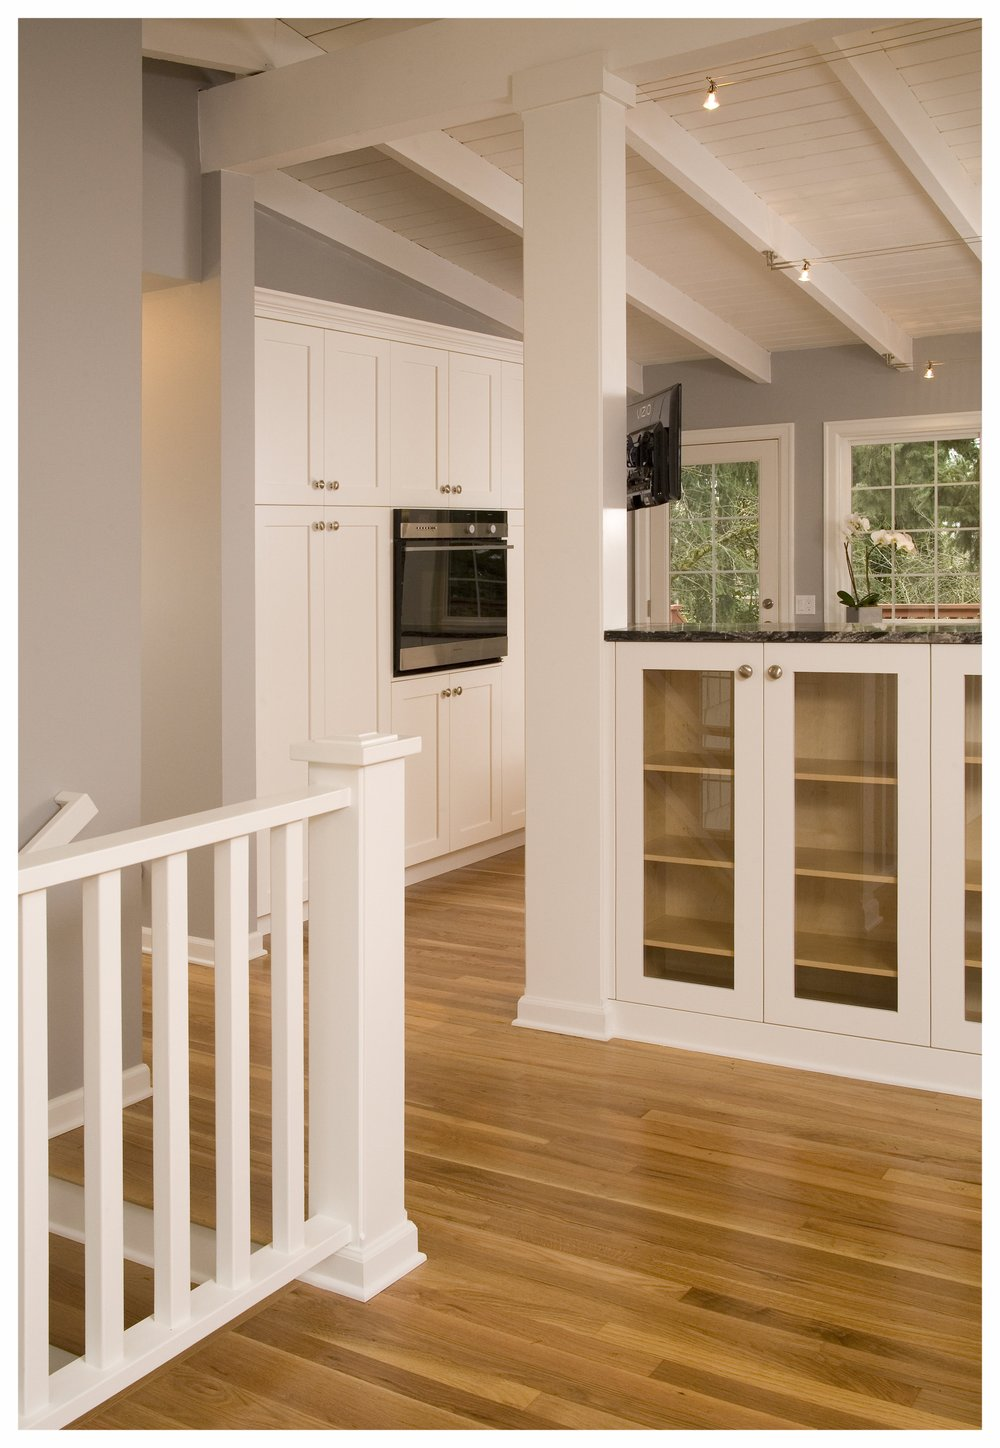 Bellevue Newport Hills Transitional Kitchen 5.jpg